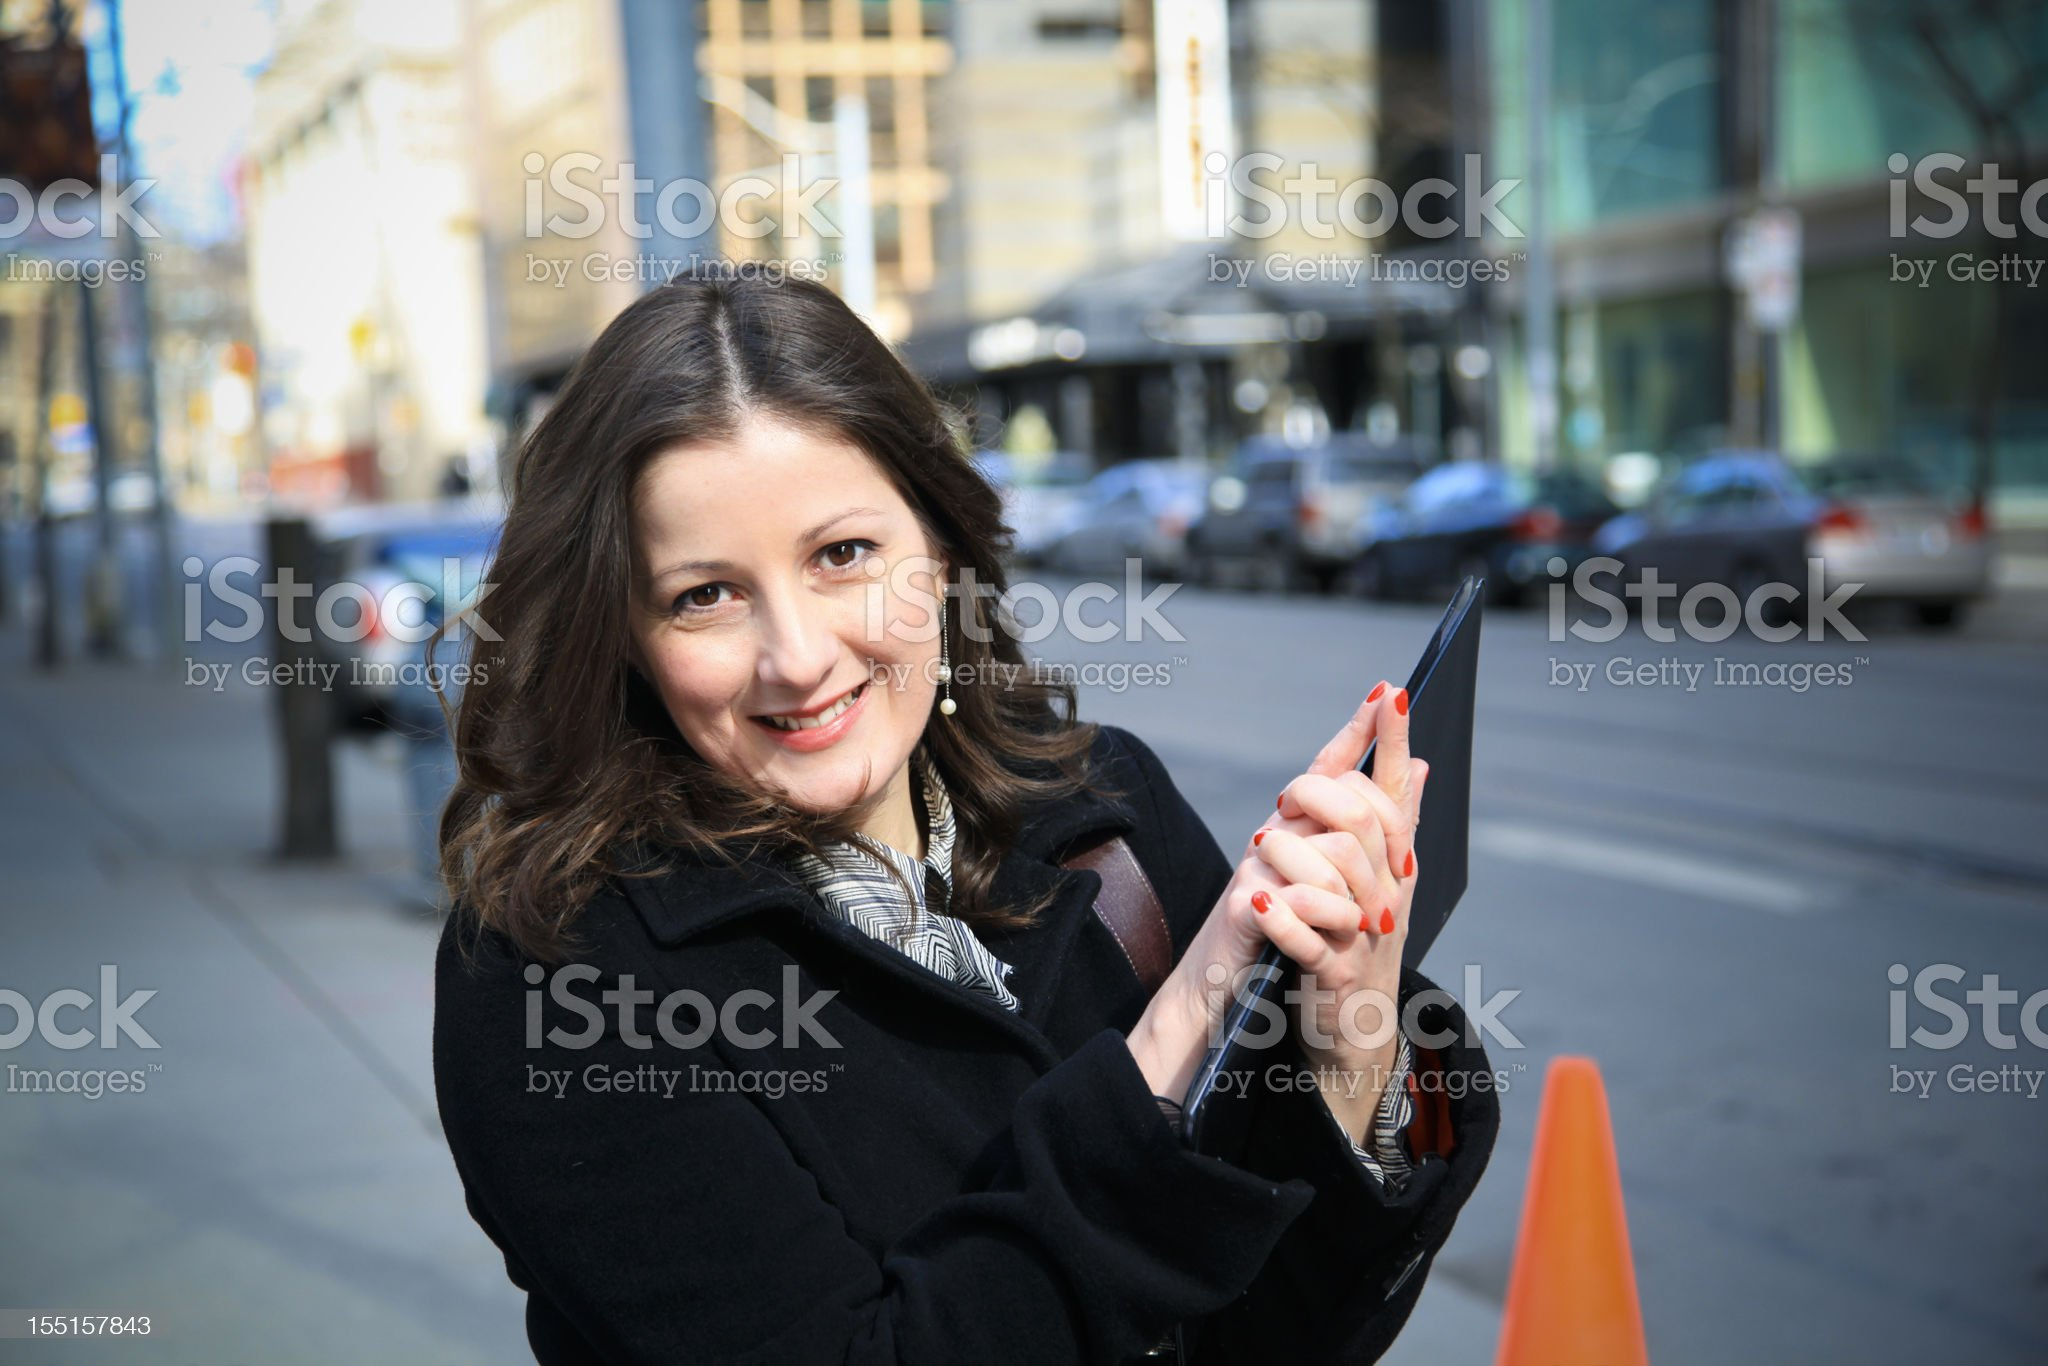 Hand Motion royalty-free stock photo